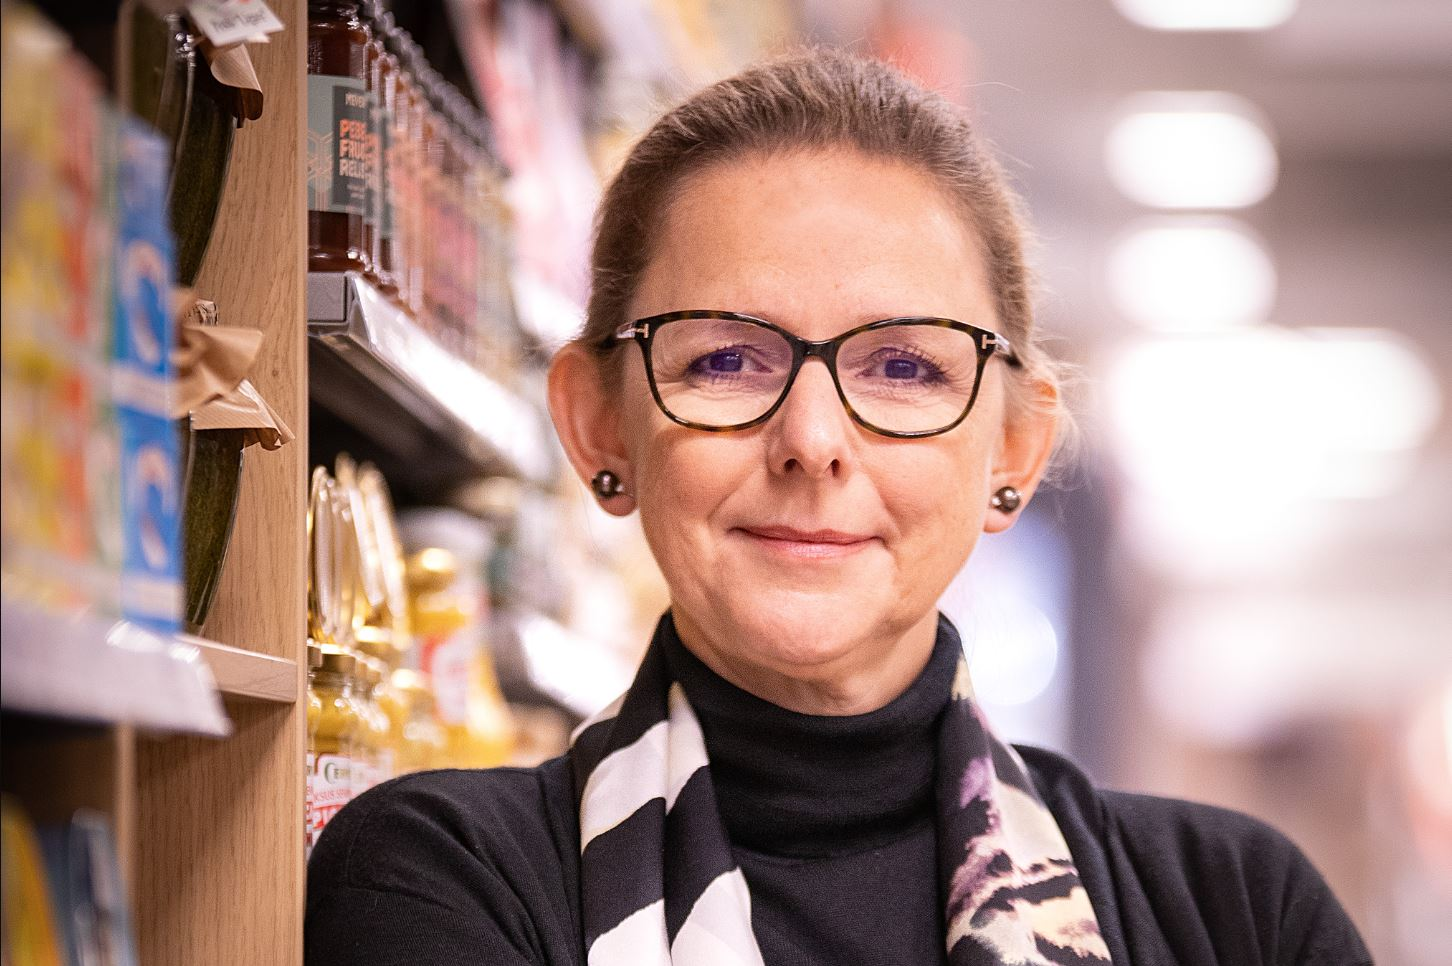 Lisbeth Dalgaard Svanholm aims to gather big and small employers